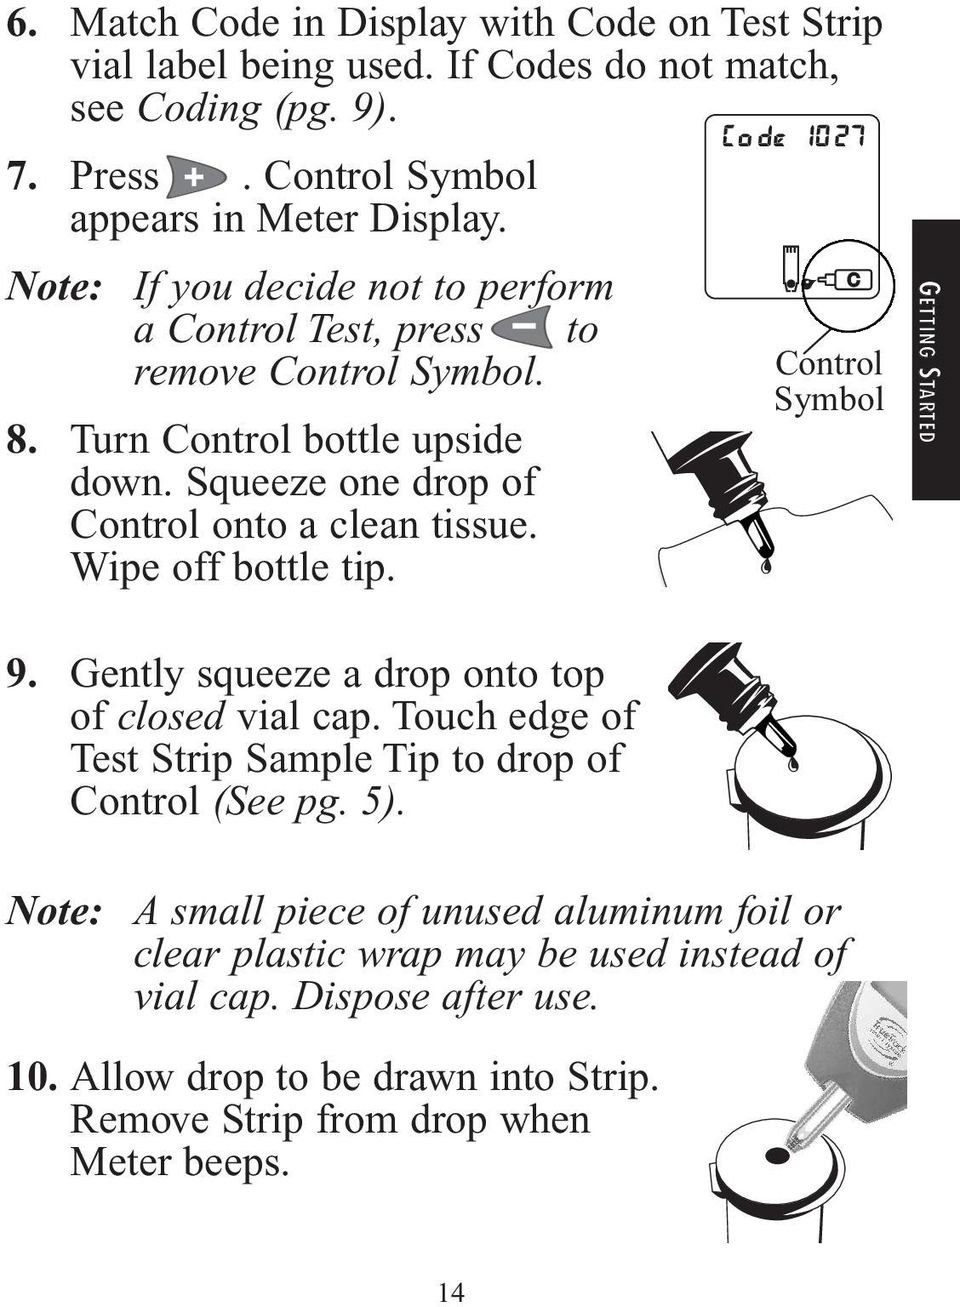 Wipe off bottle tip. Control Symbol GETTING STARTED 9. Gently squeeze a drop onto top of closed vial cap. Touch edge of Test Strip Sample Tip to drop of Control (See pg. 5).